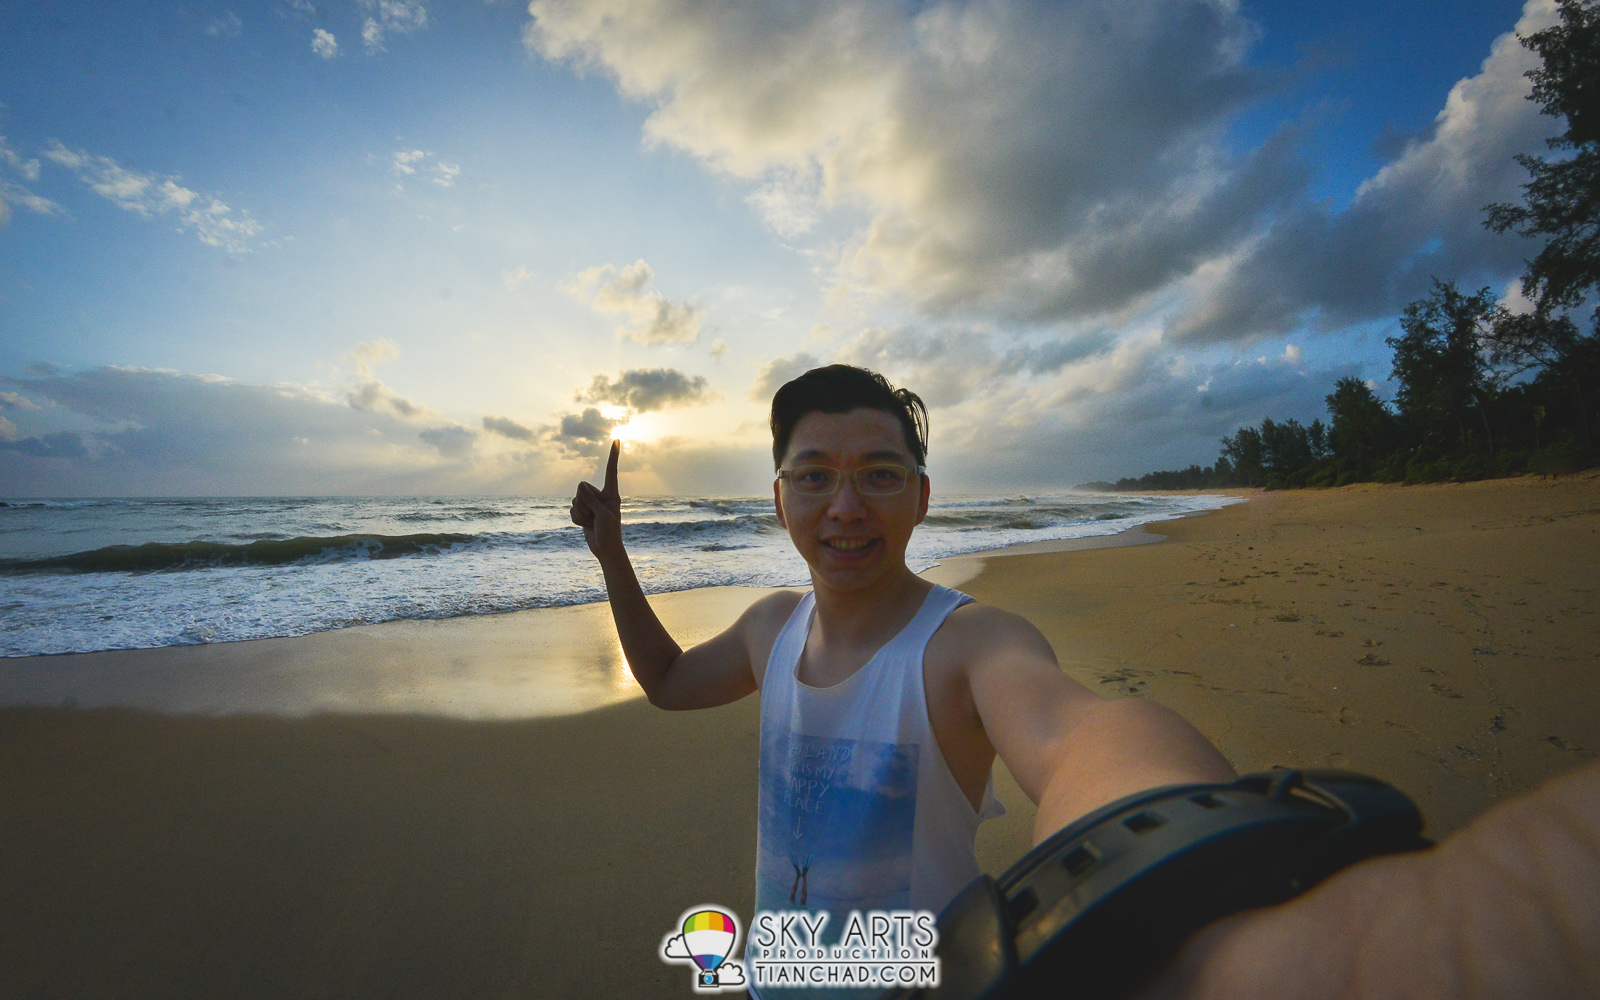 #TCSelfie with Tanjong Jara Beach - A beautiful place in Malaysia you  should visit!